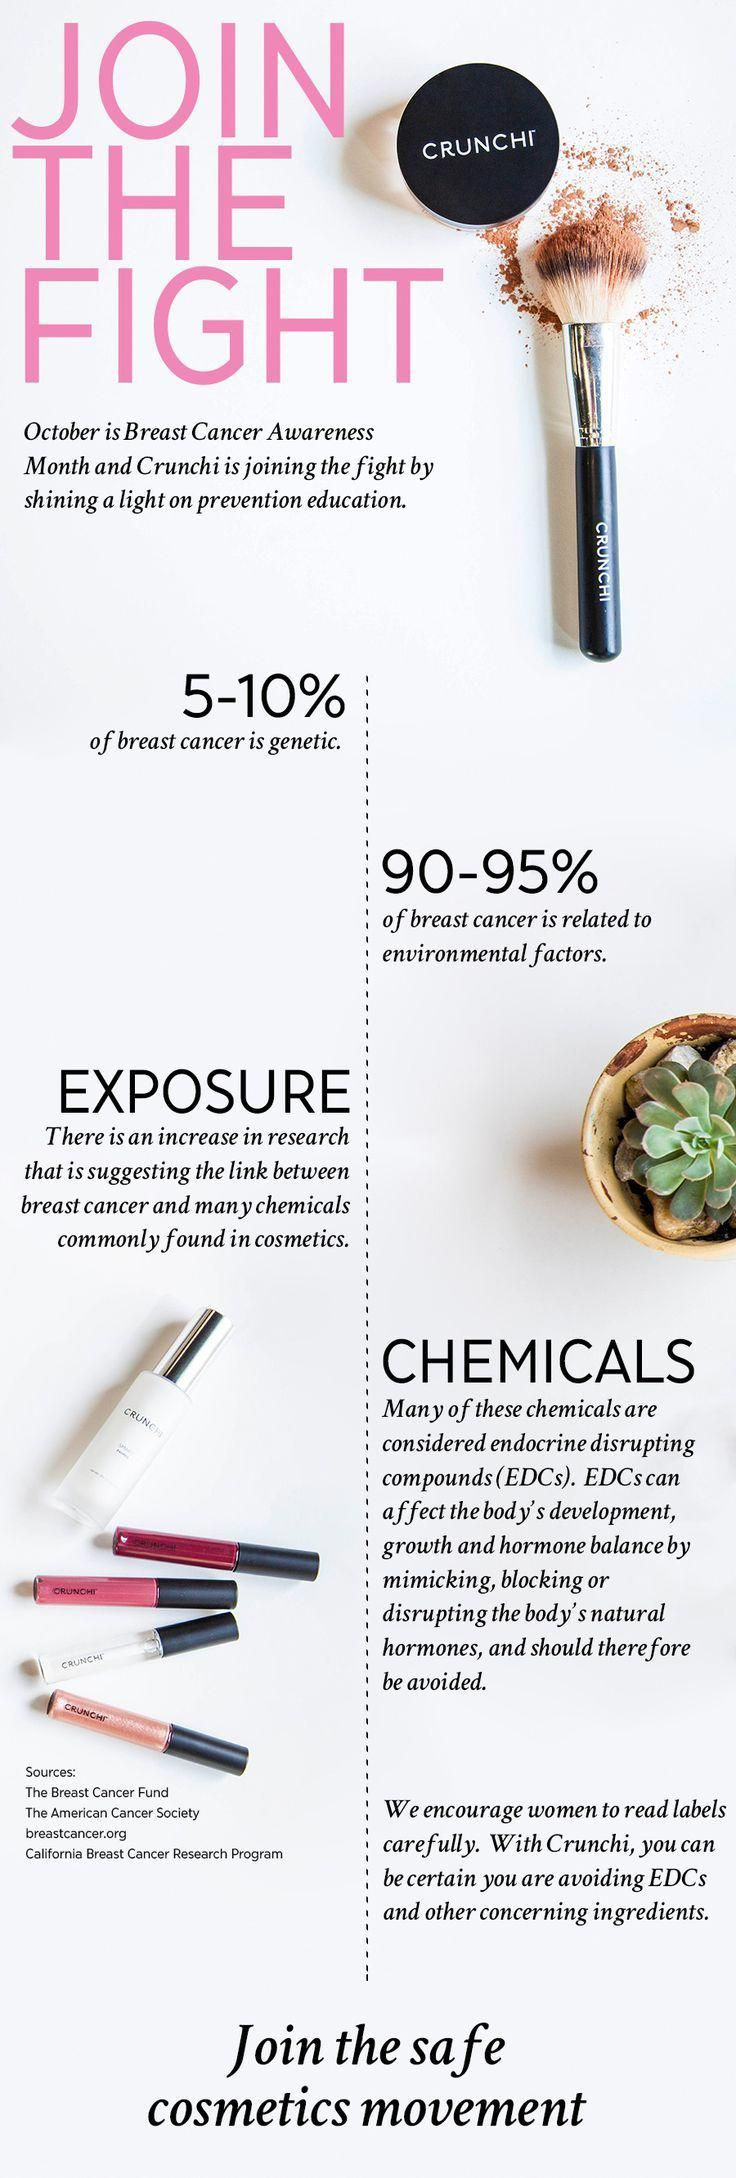 Makeup Tips Where cancerous chemicals are hiding.